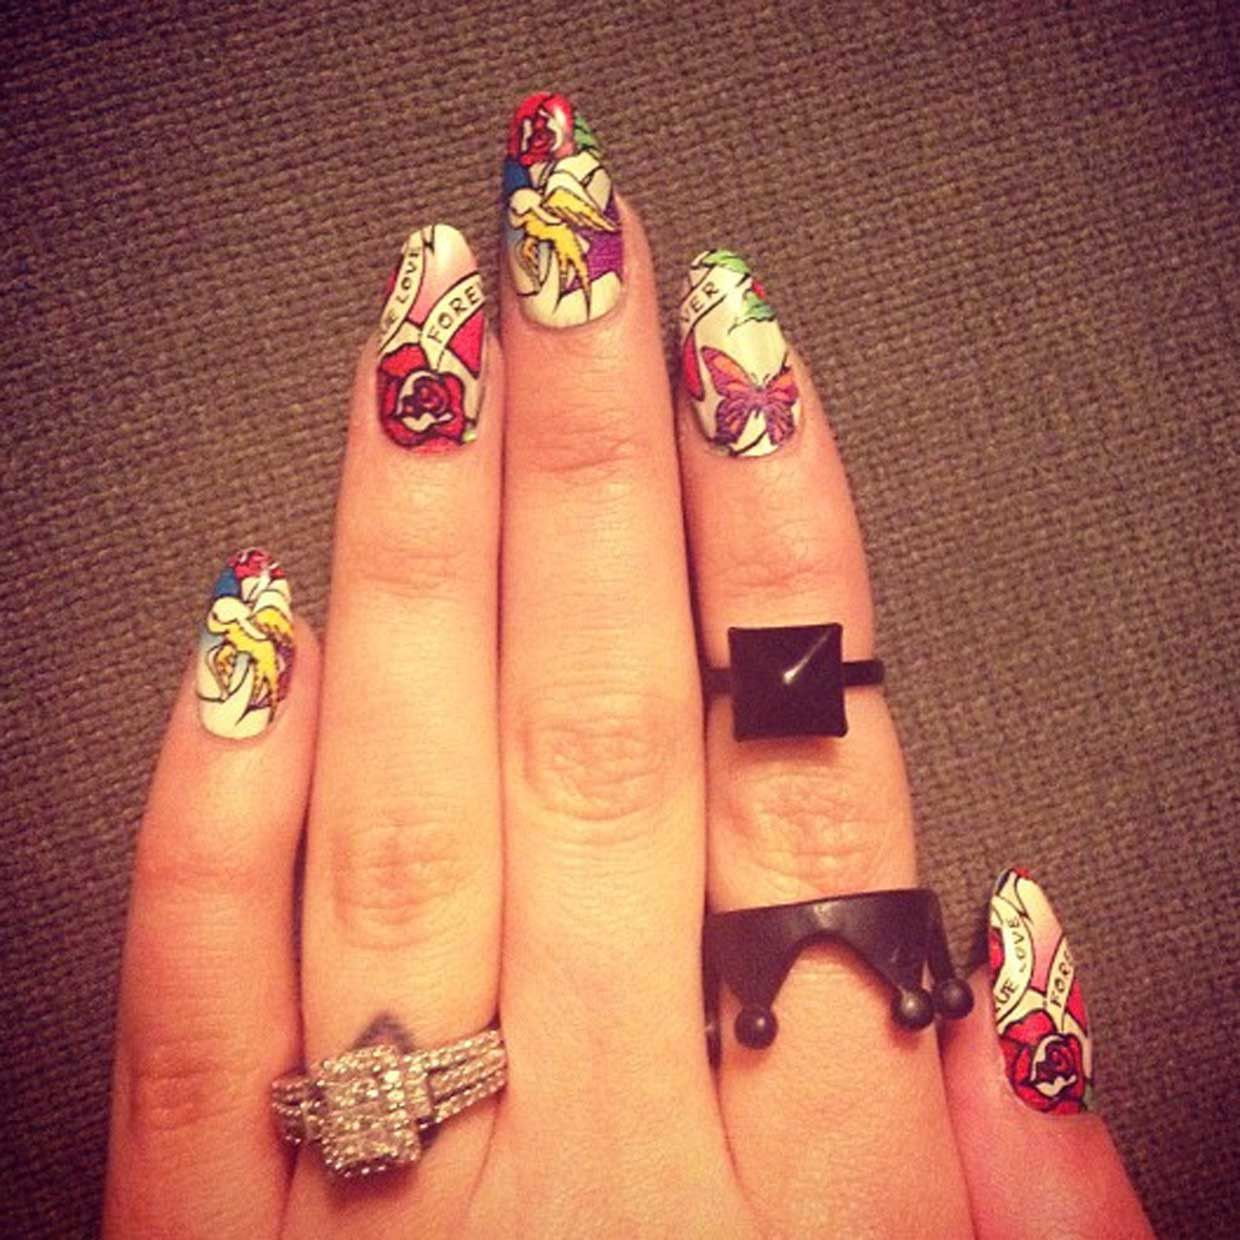 British singer Cher Lloyd put her Sailor Jerry-inspired graphic nails on display for her fans.